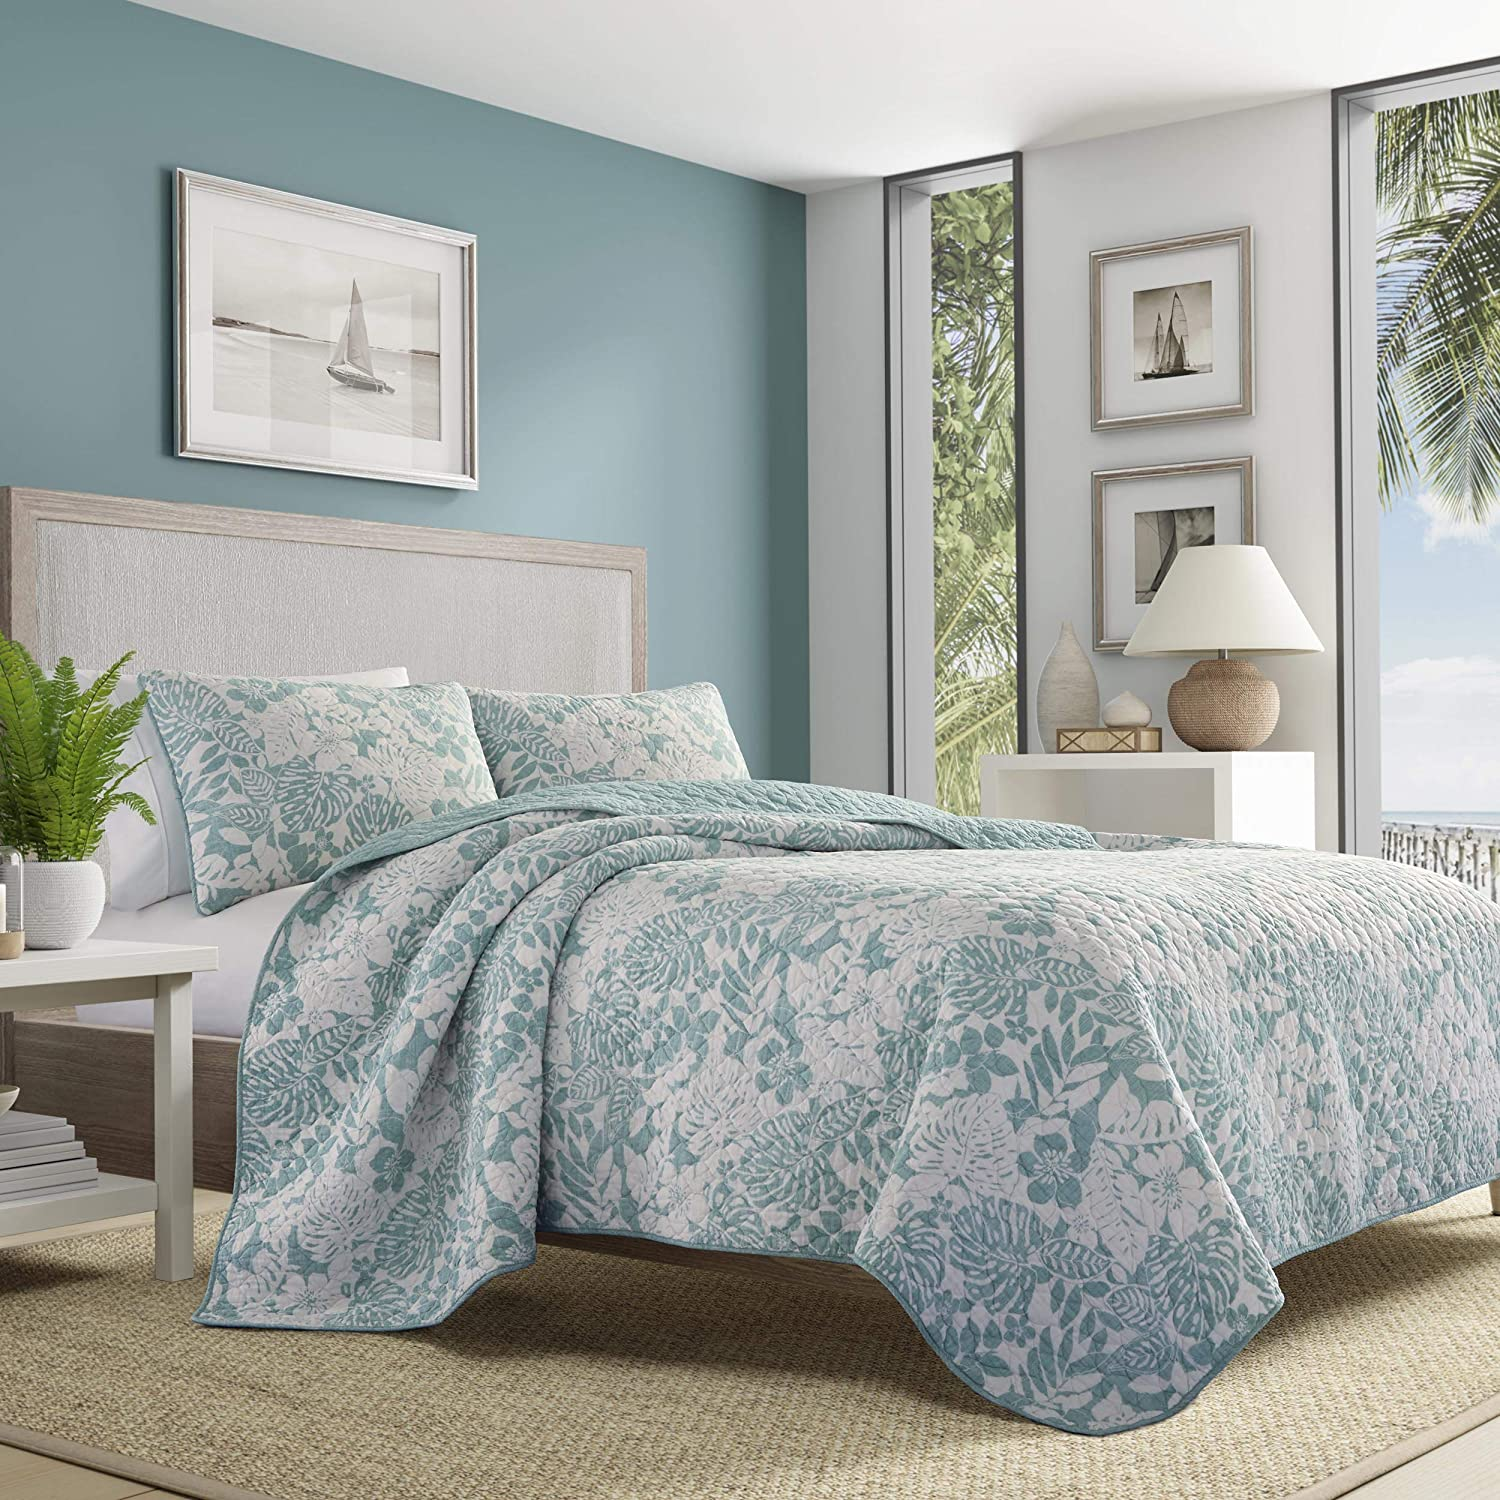 Tommy Bahama Laguna Beach Quilt Set, Full/Queen